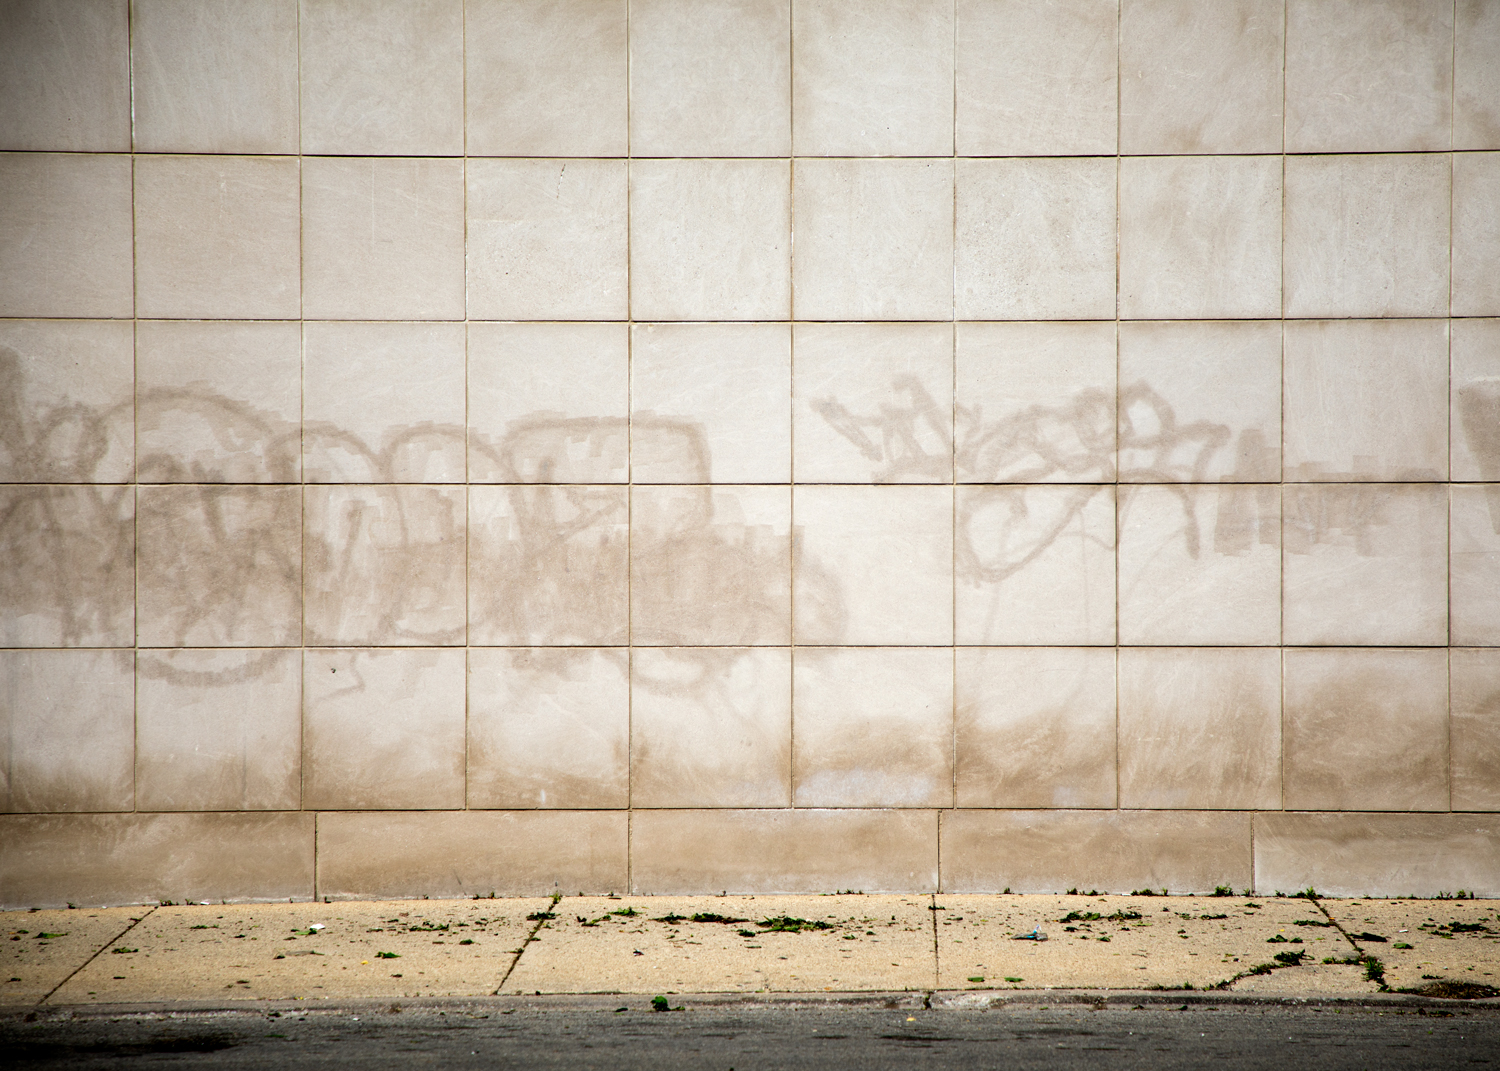 Traces of graffiti linger on a wall in Rogers Park. (Andrew Gill/WBEZ)